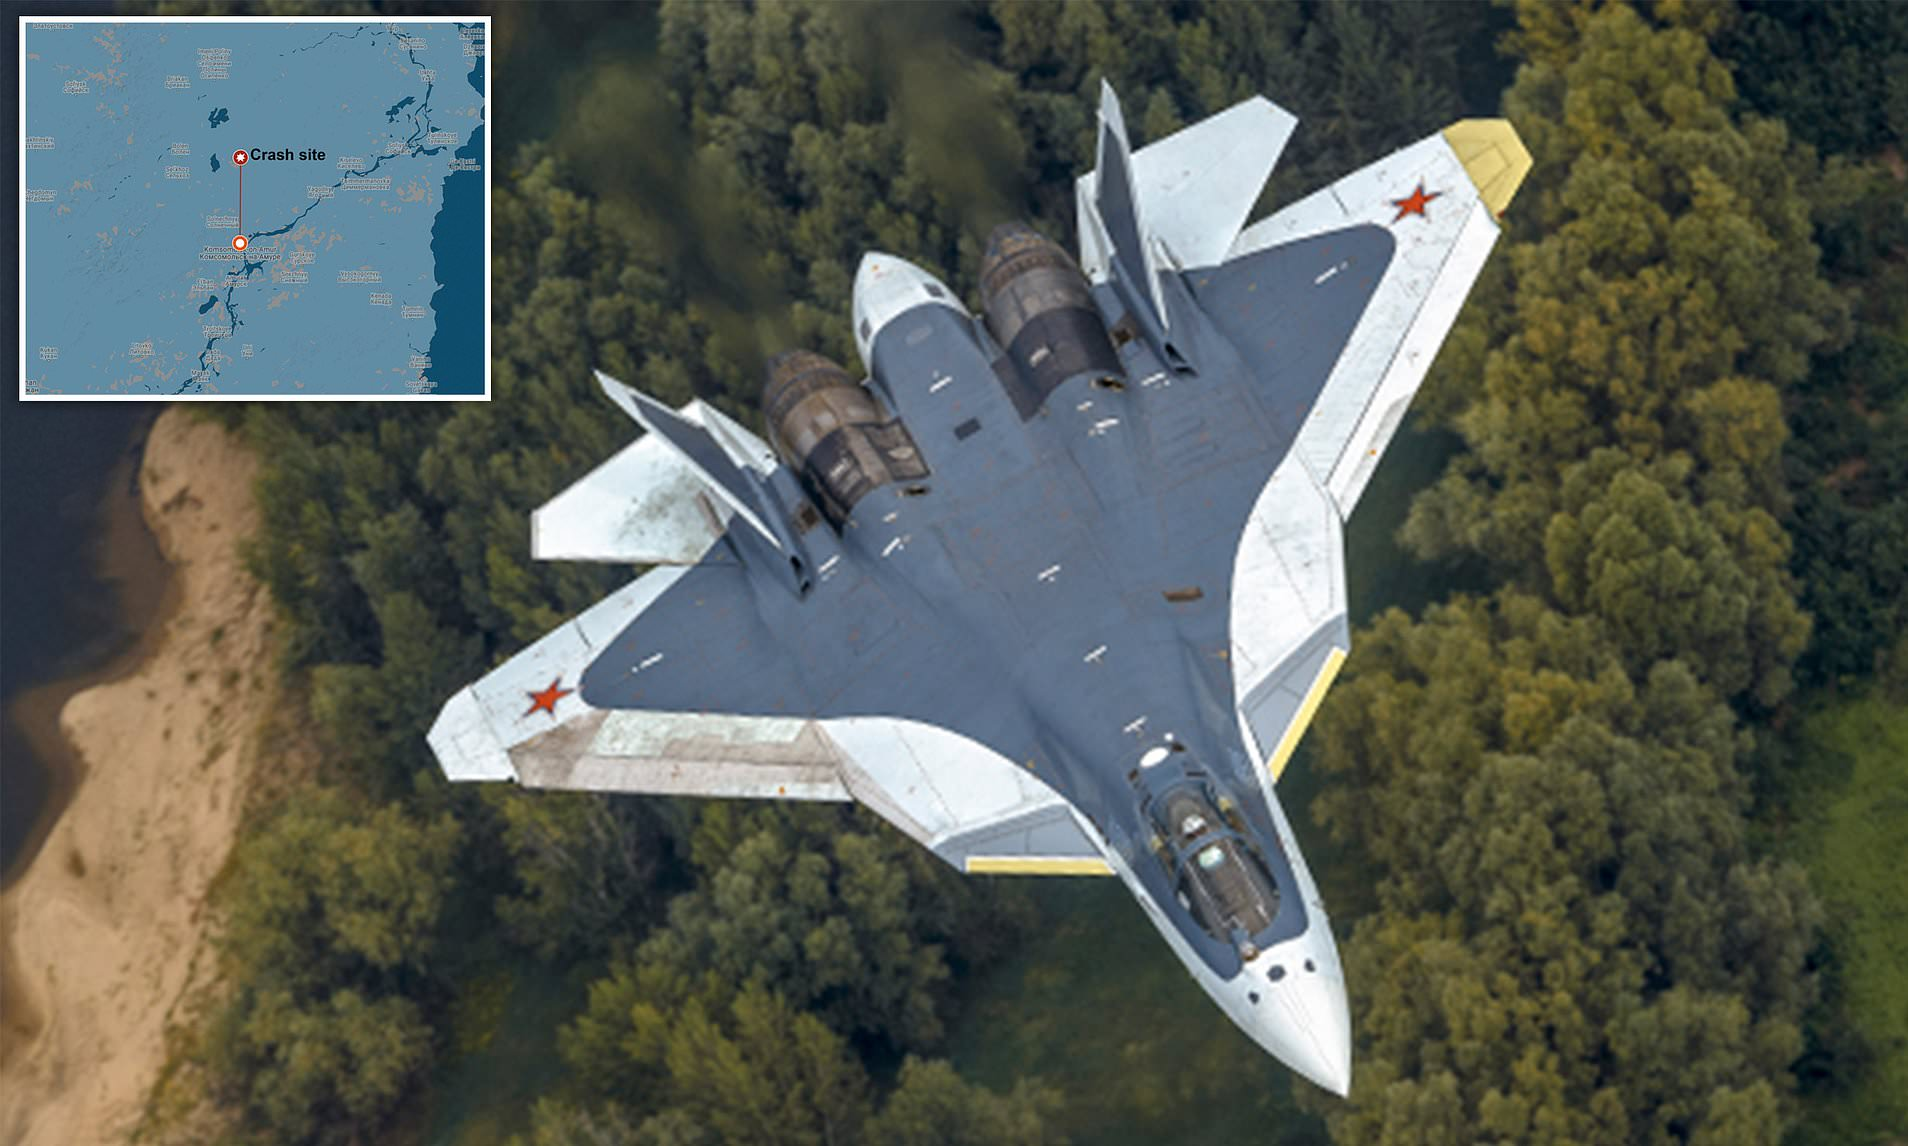 Crashed Su-57 Was First Serially Produced Aircraft To Be Delivered to Russian Aerospace Forces